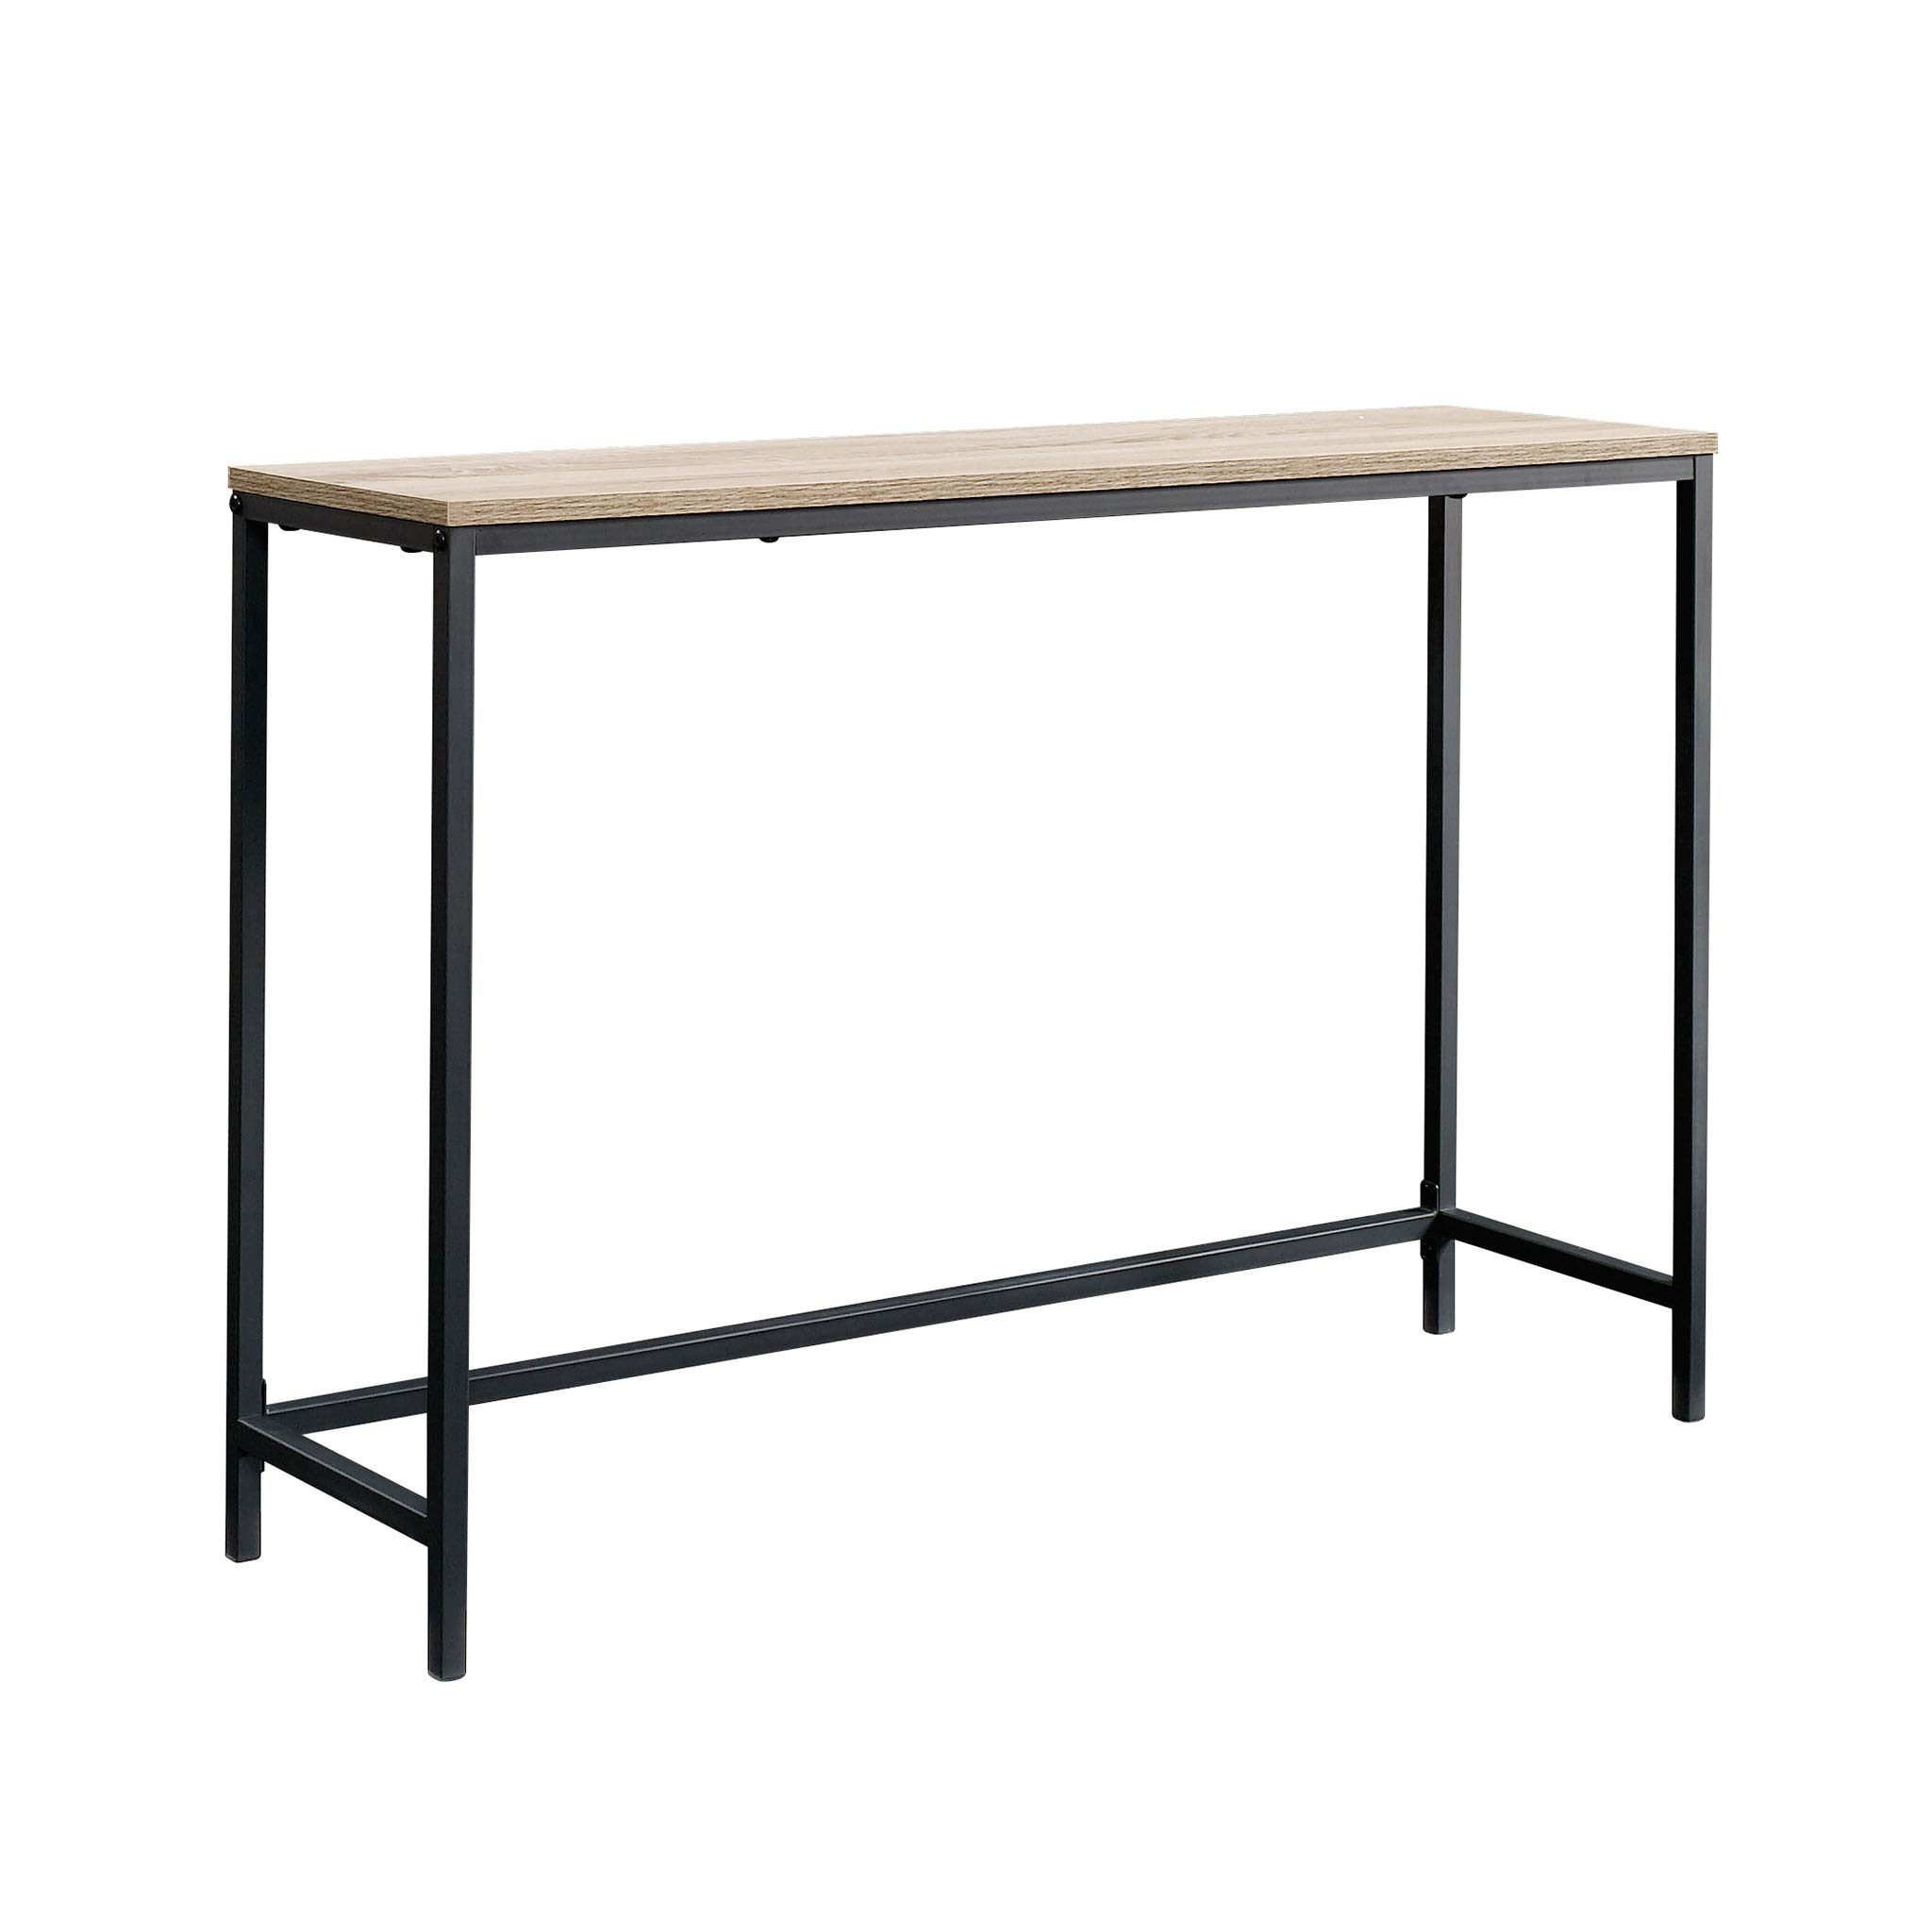 Sauder 420042 North Avenue Sofa Table, L: 41.50'' x W: 11.50'' x H: 28.03'',  Charter Oak finish